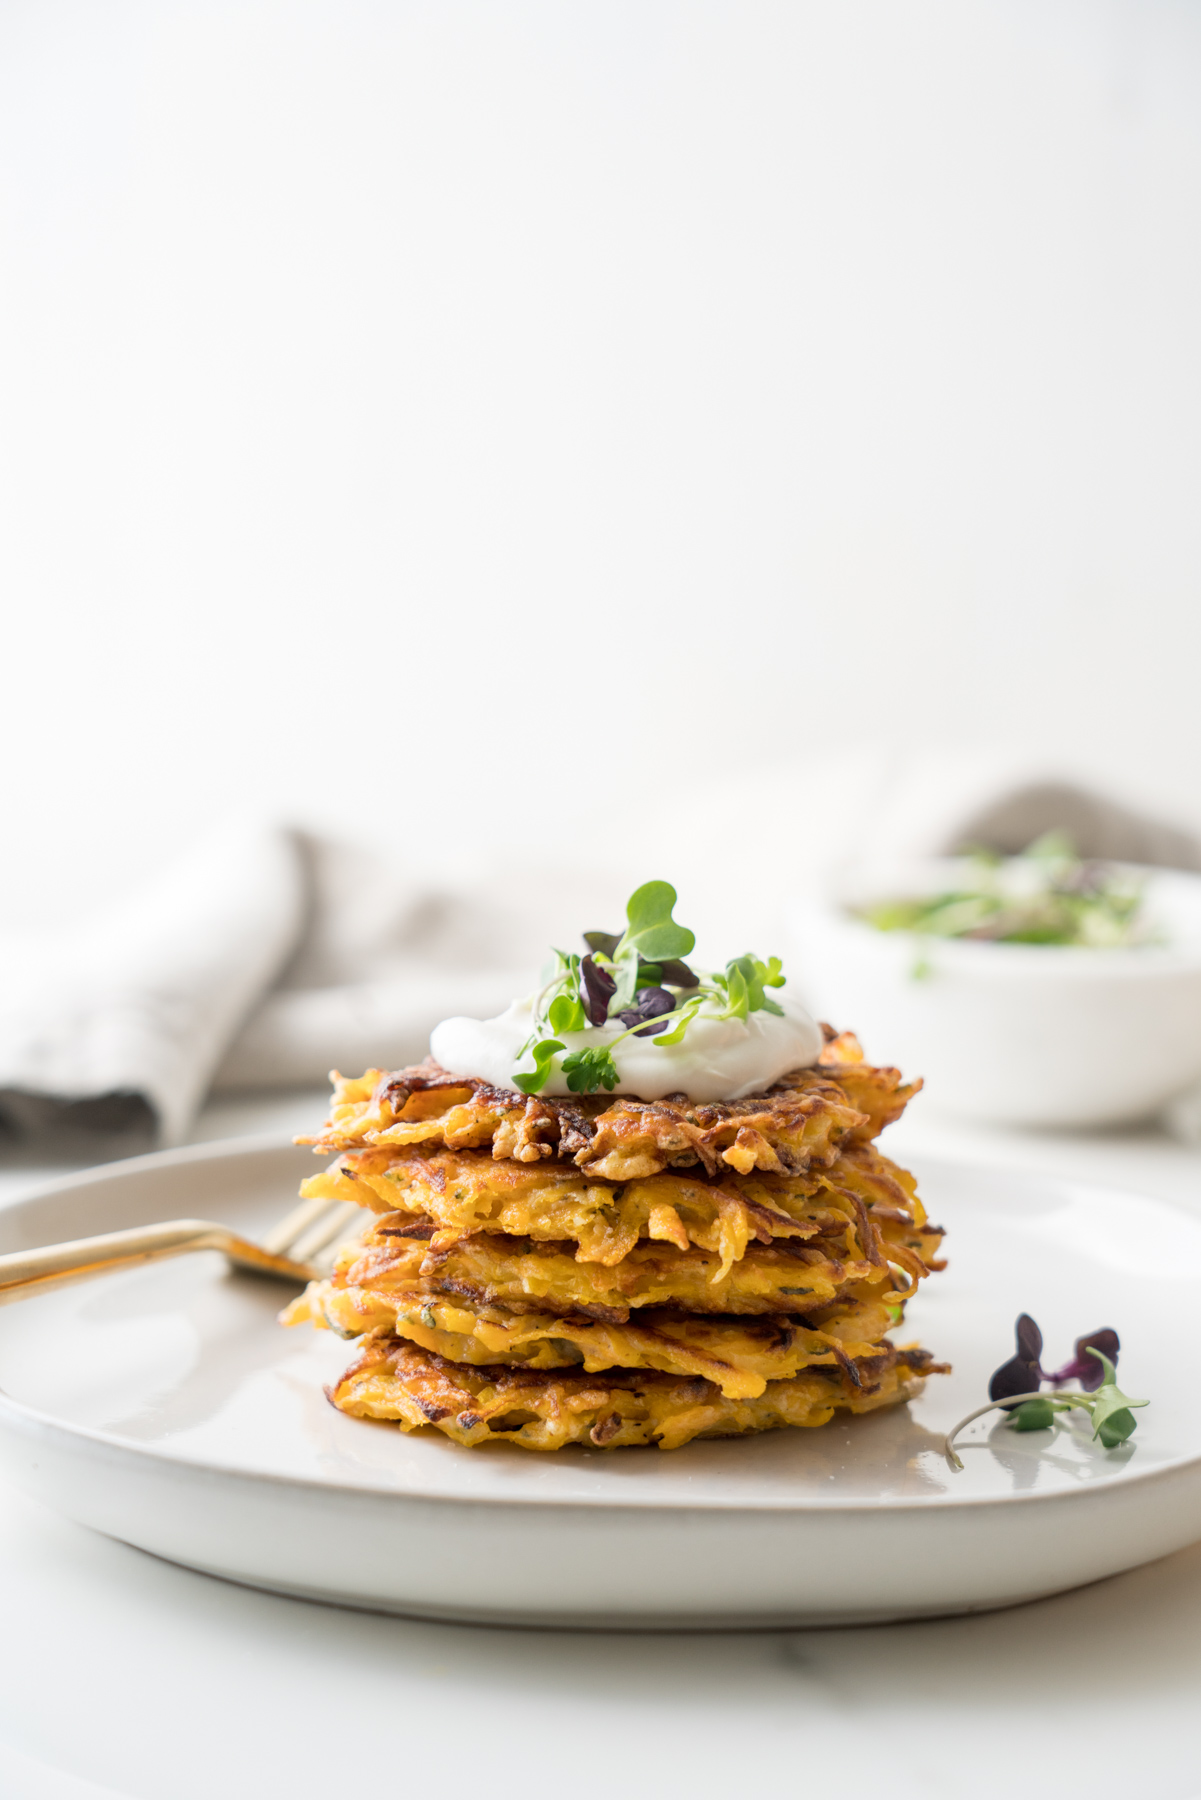 Simple Butternut Squash Fritters, by Brunchographers